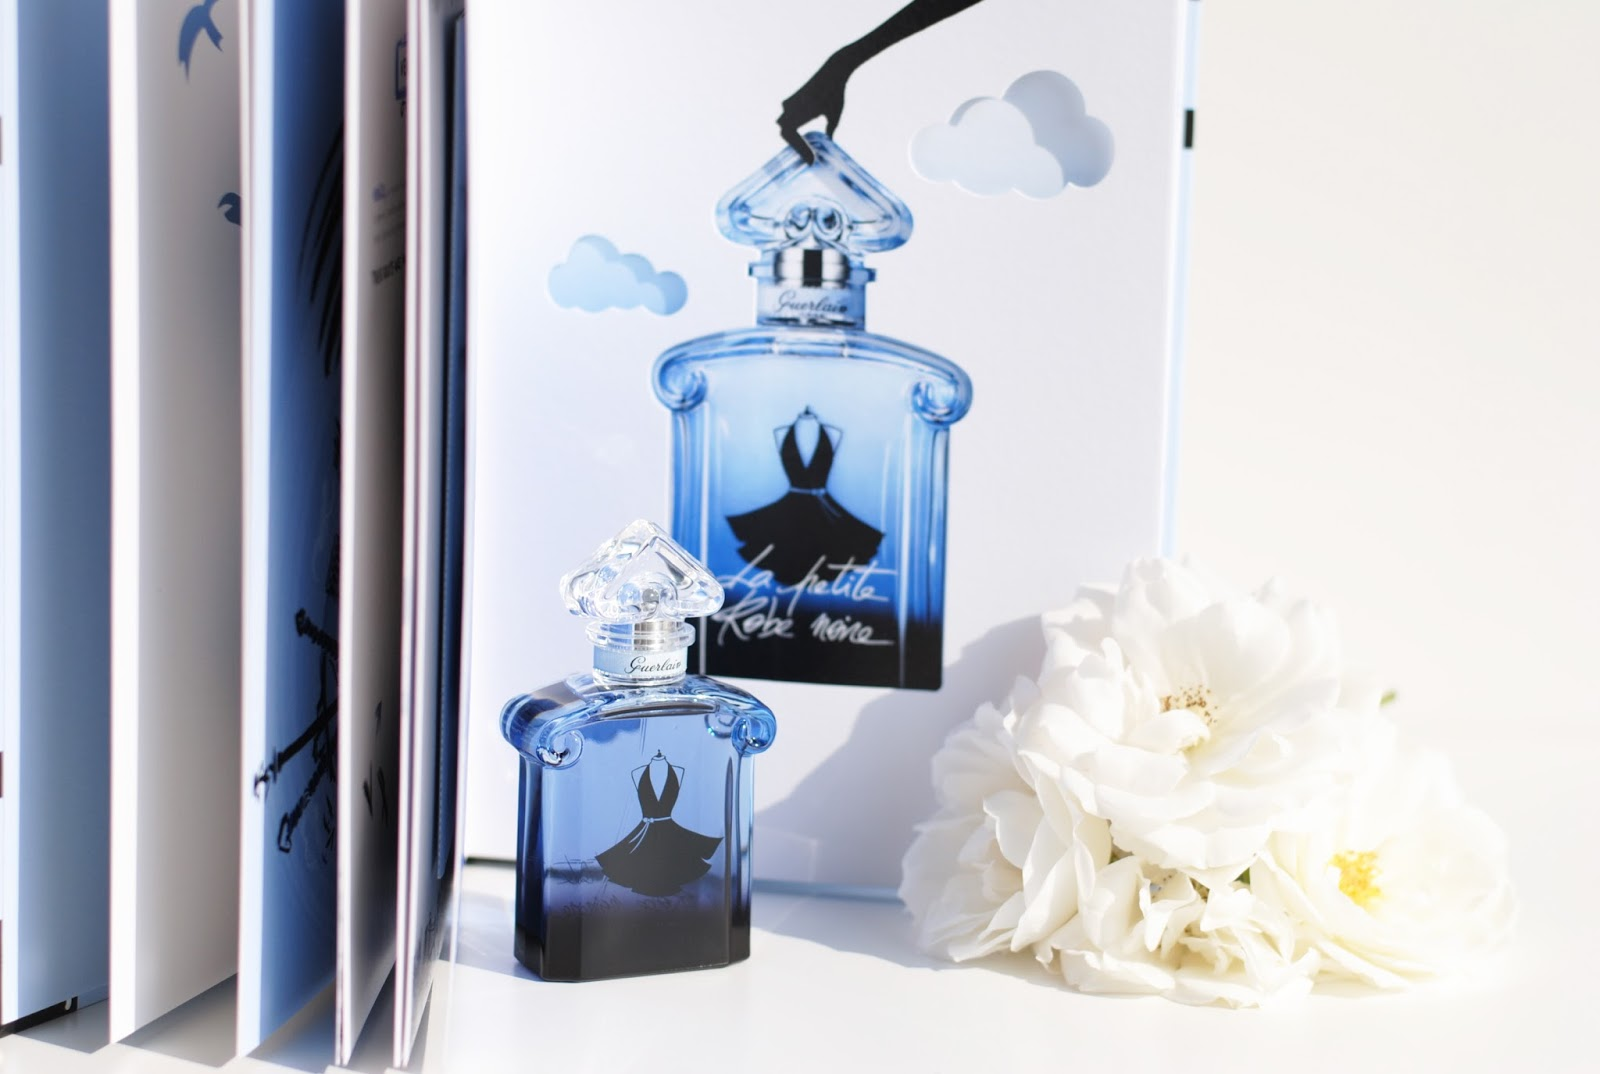 08bb398a9f3 This new fragrance is the fourth in the La Petite Robe Noire line - it s  been only a year since Guerlain released the Eau Fraiche ...